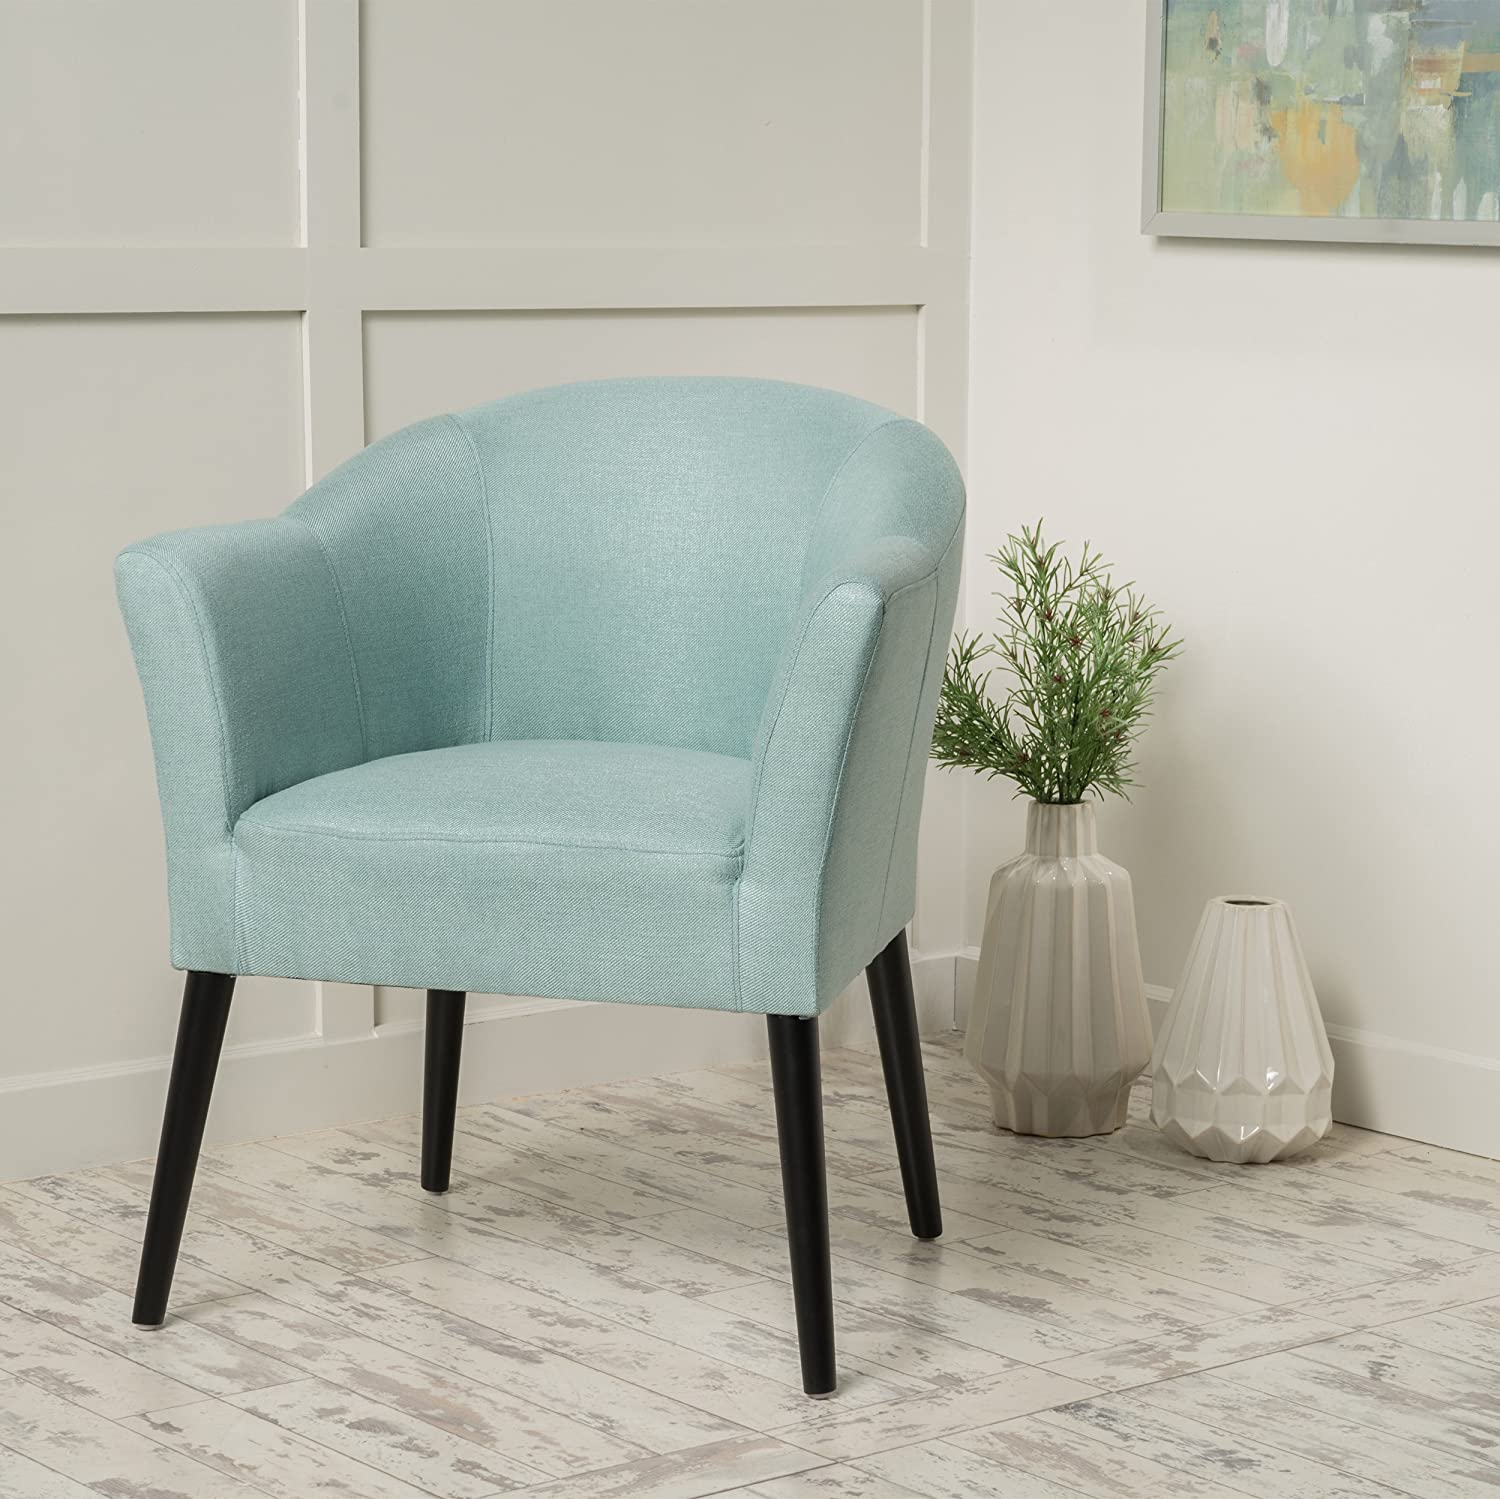 Charmaine Light Blue Fabric Arm Chair